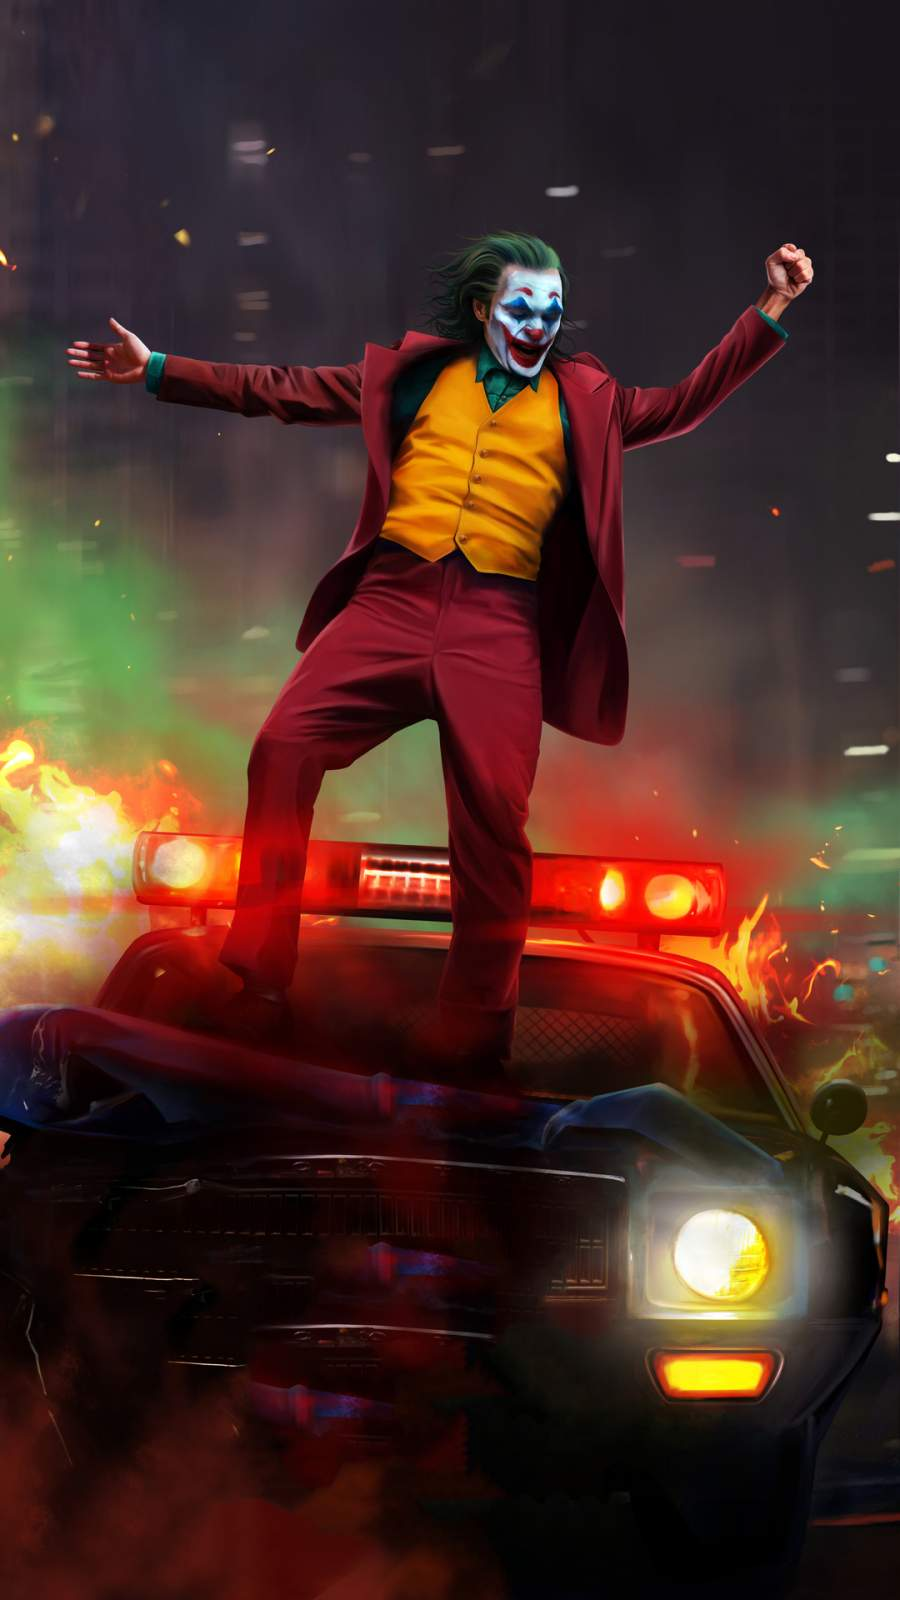 Joker vs Police iPhone Wallpaper